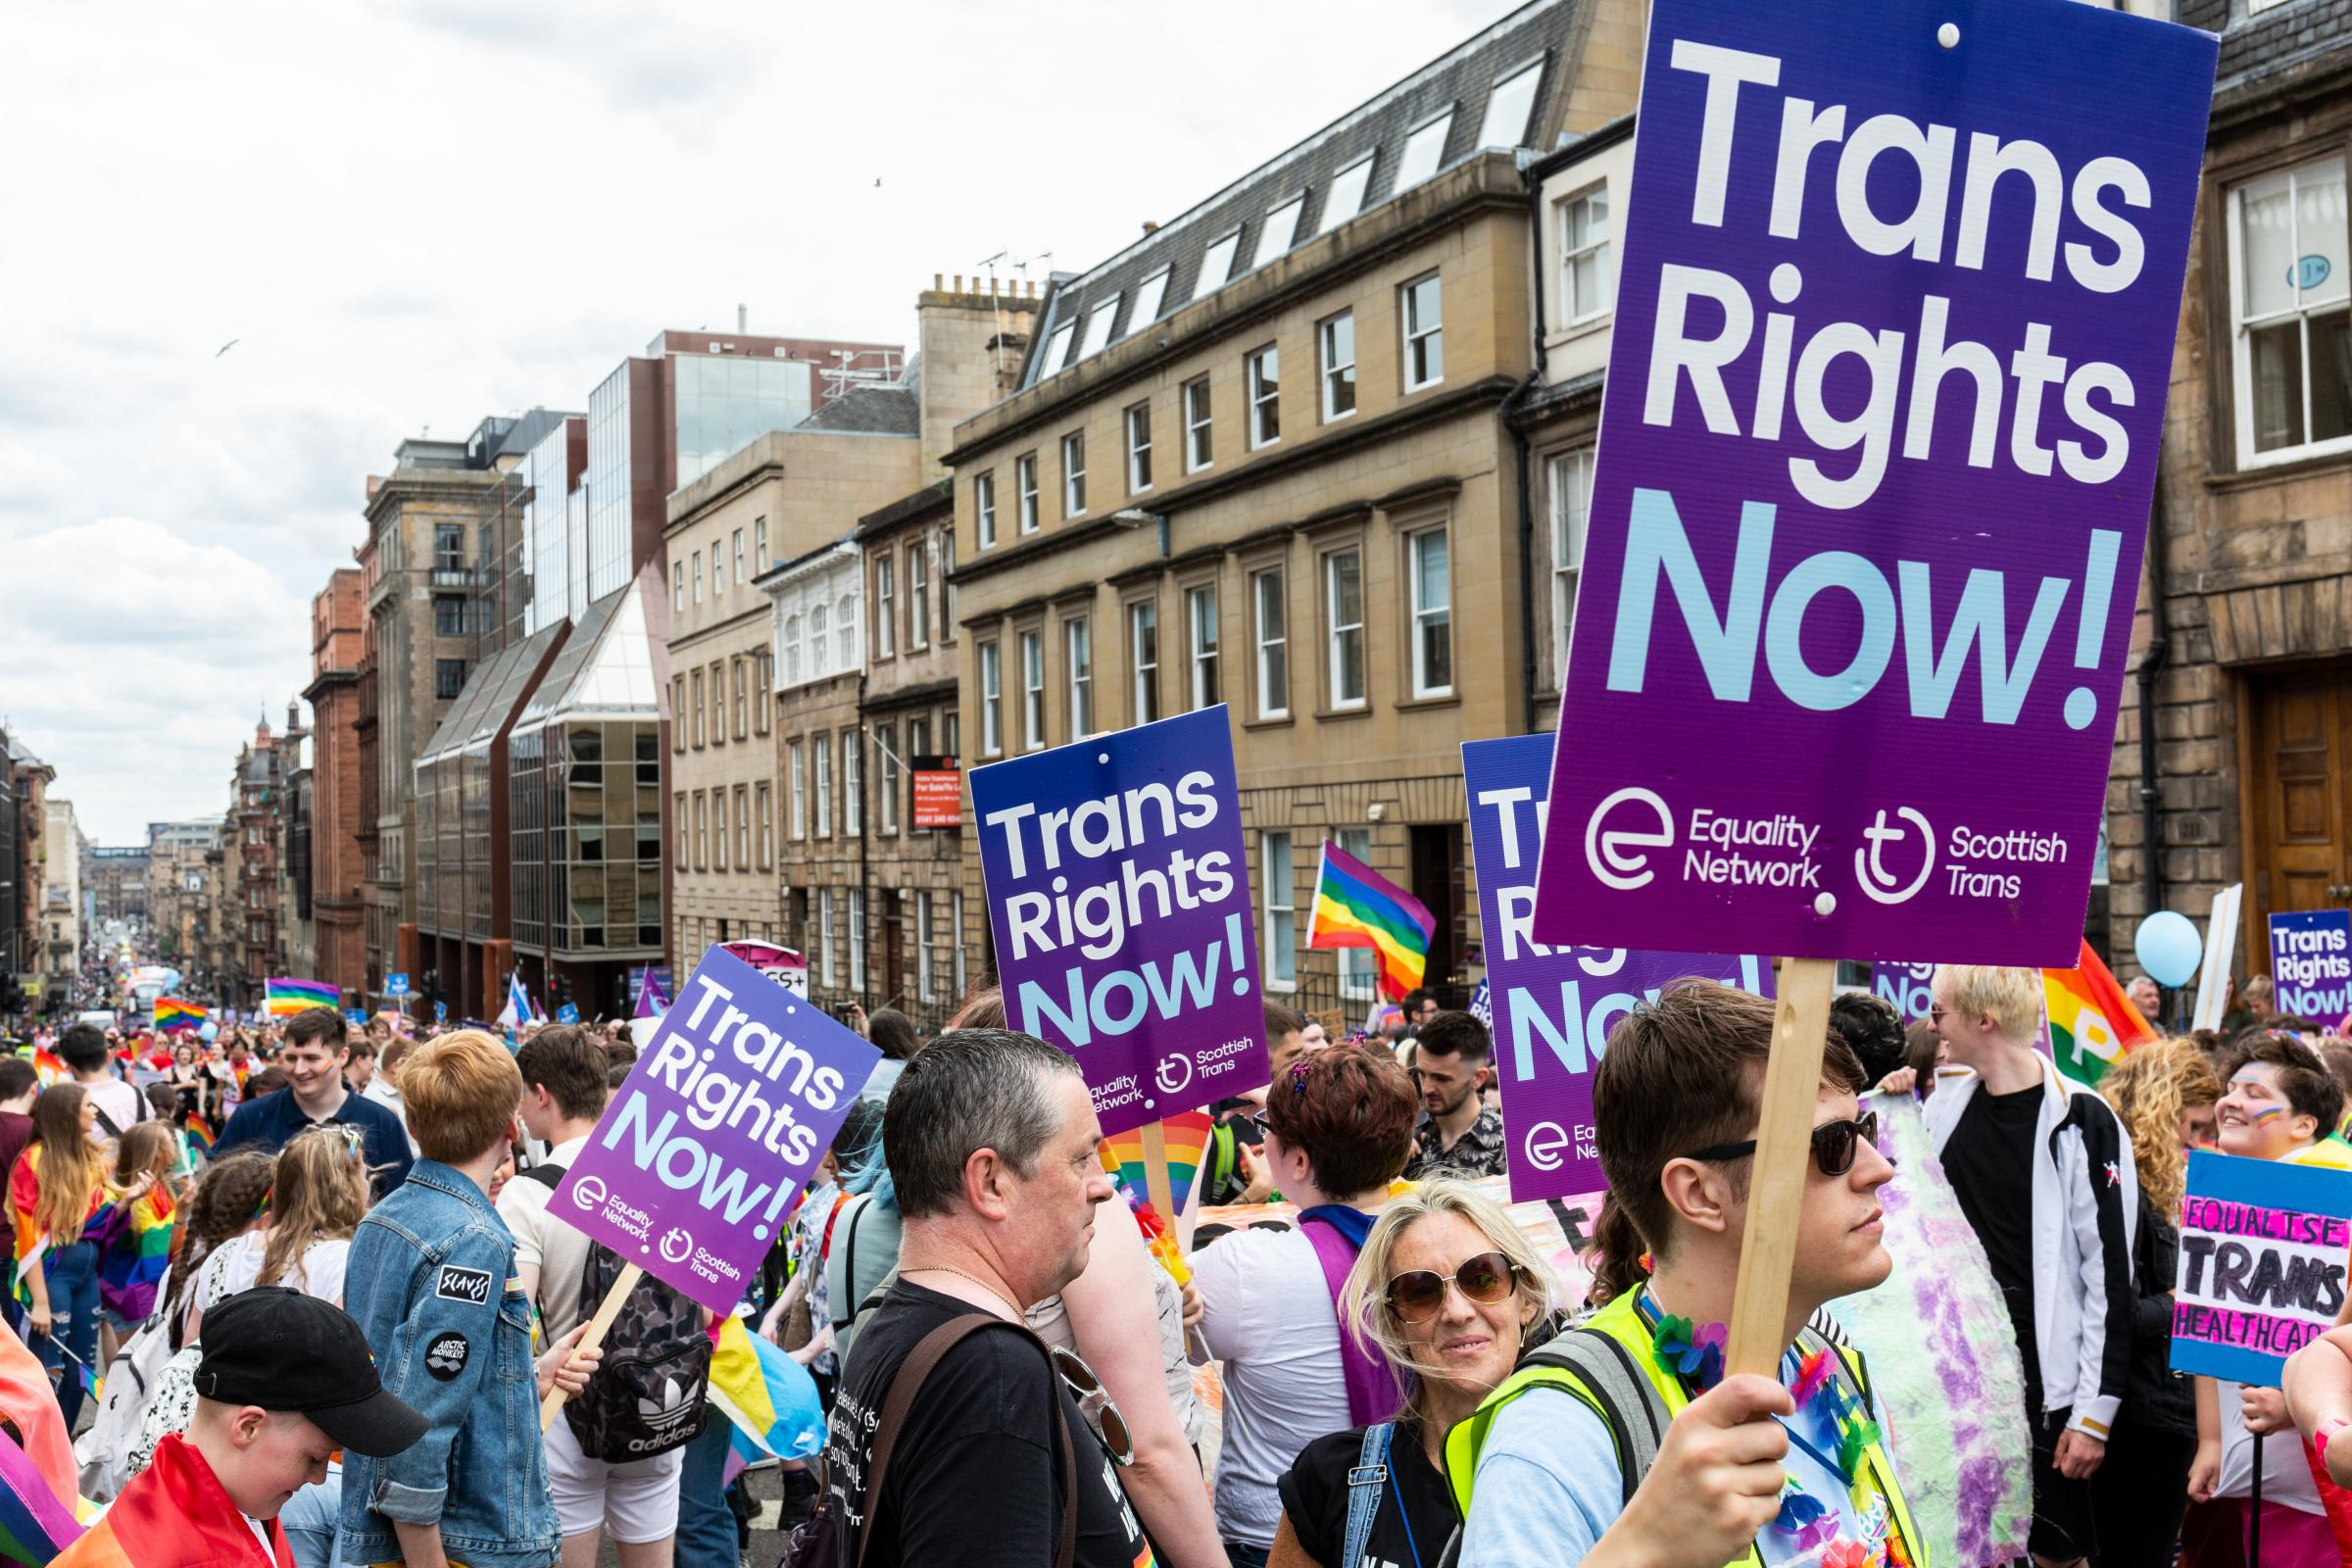 Let us have a measured debate on the issue of transgender rights